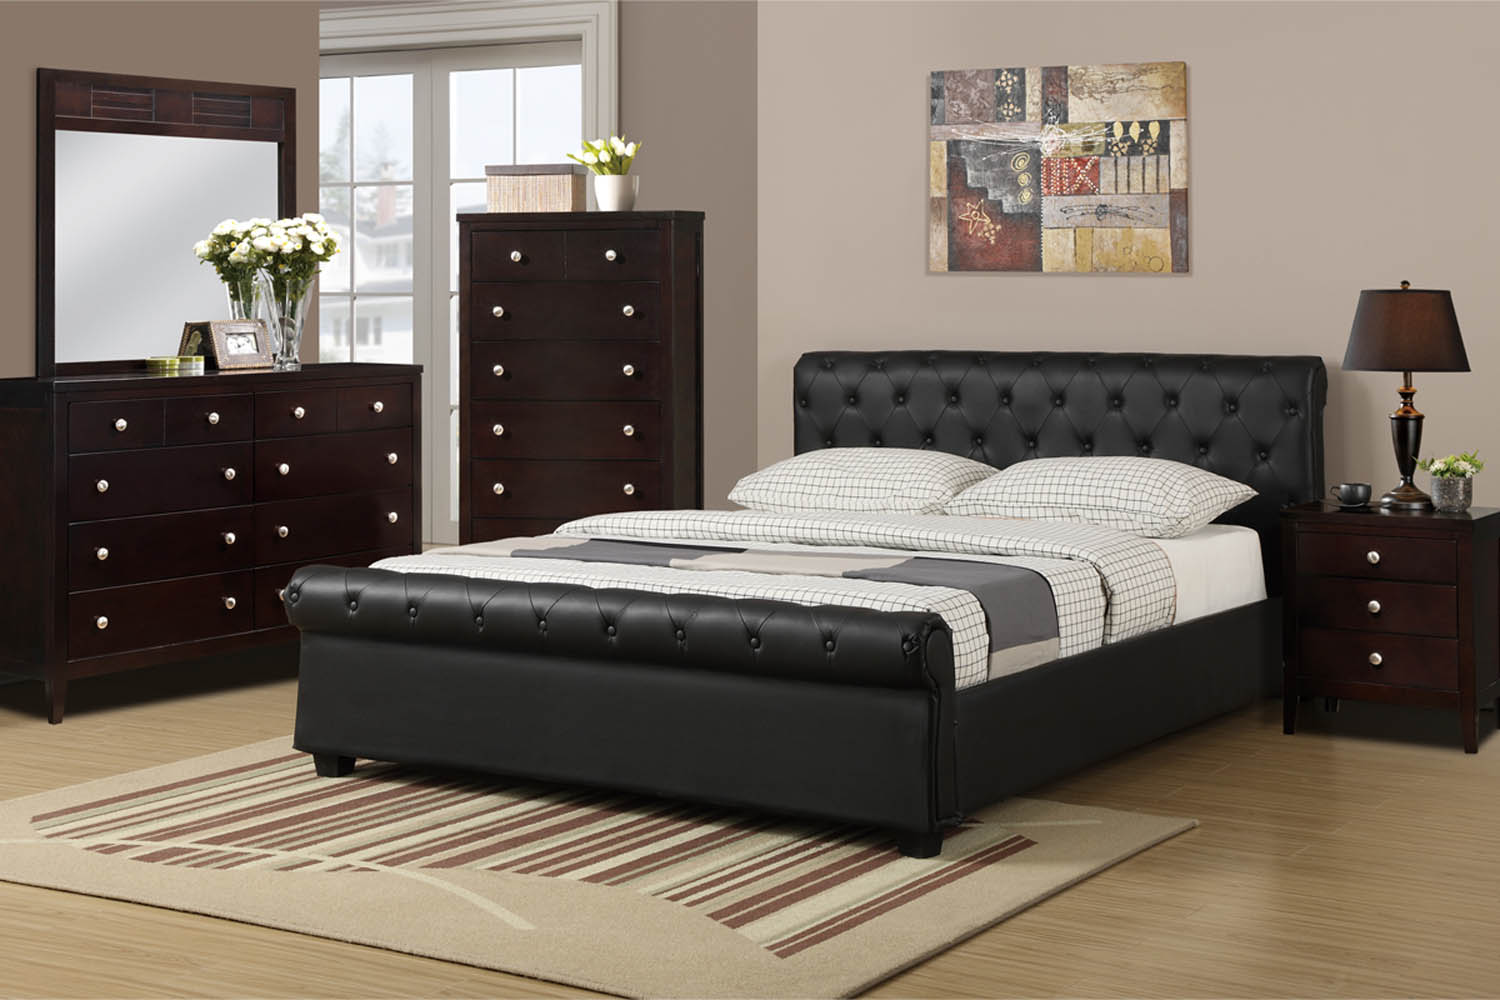 Black Tufted Faux Leather Bed Frame